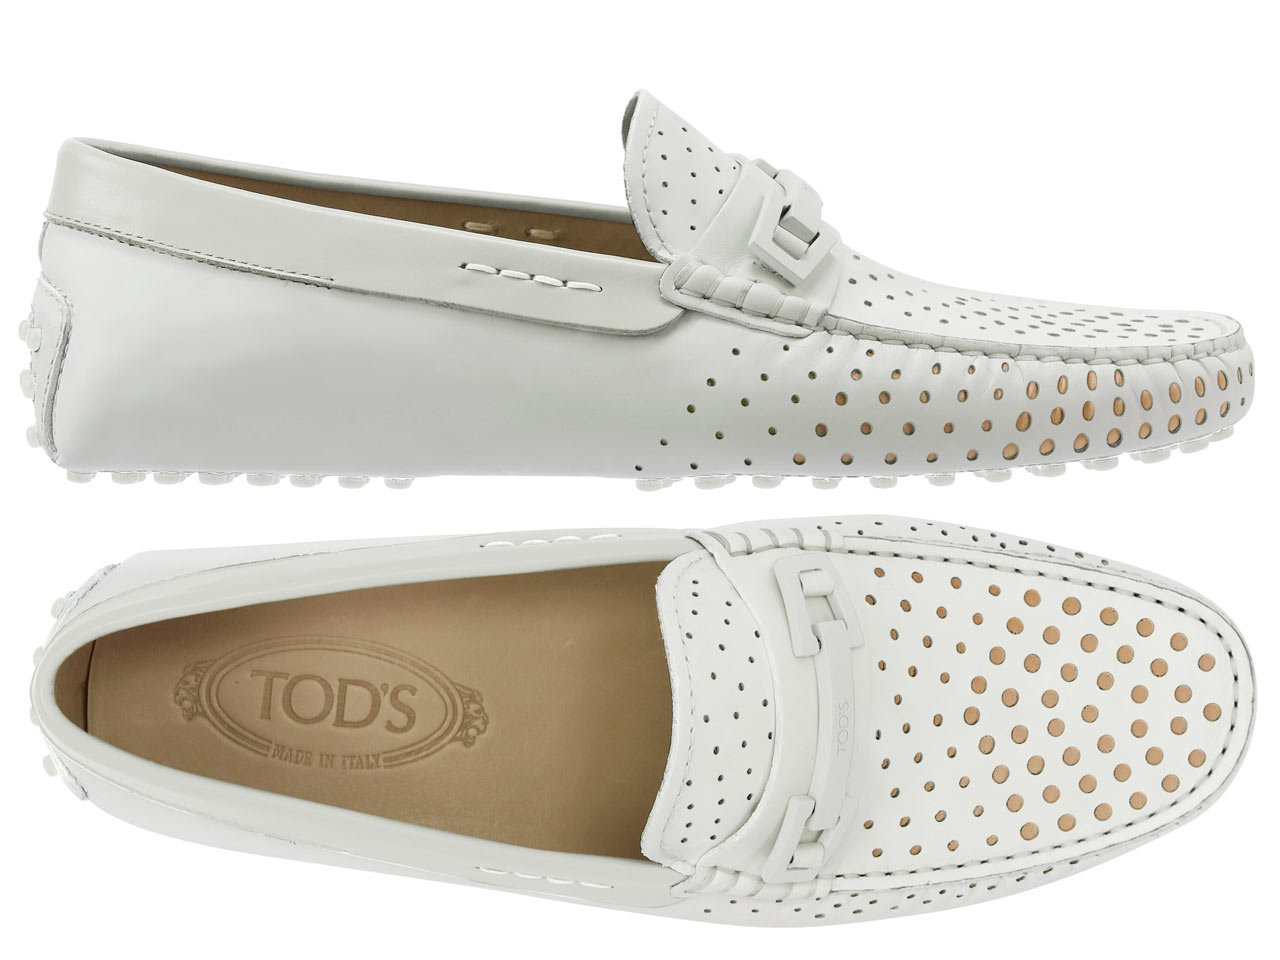 Marc Thorpe Reimagines the Driving Shoe for Tod's